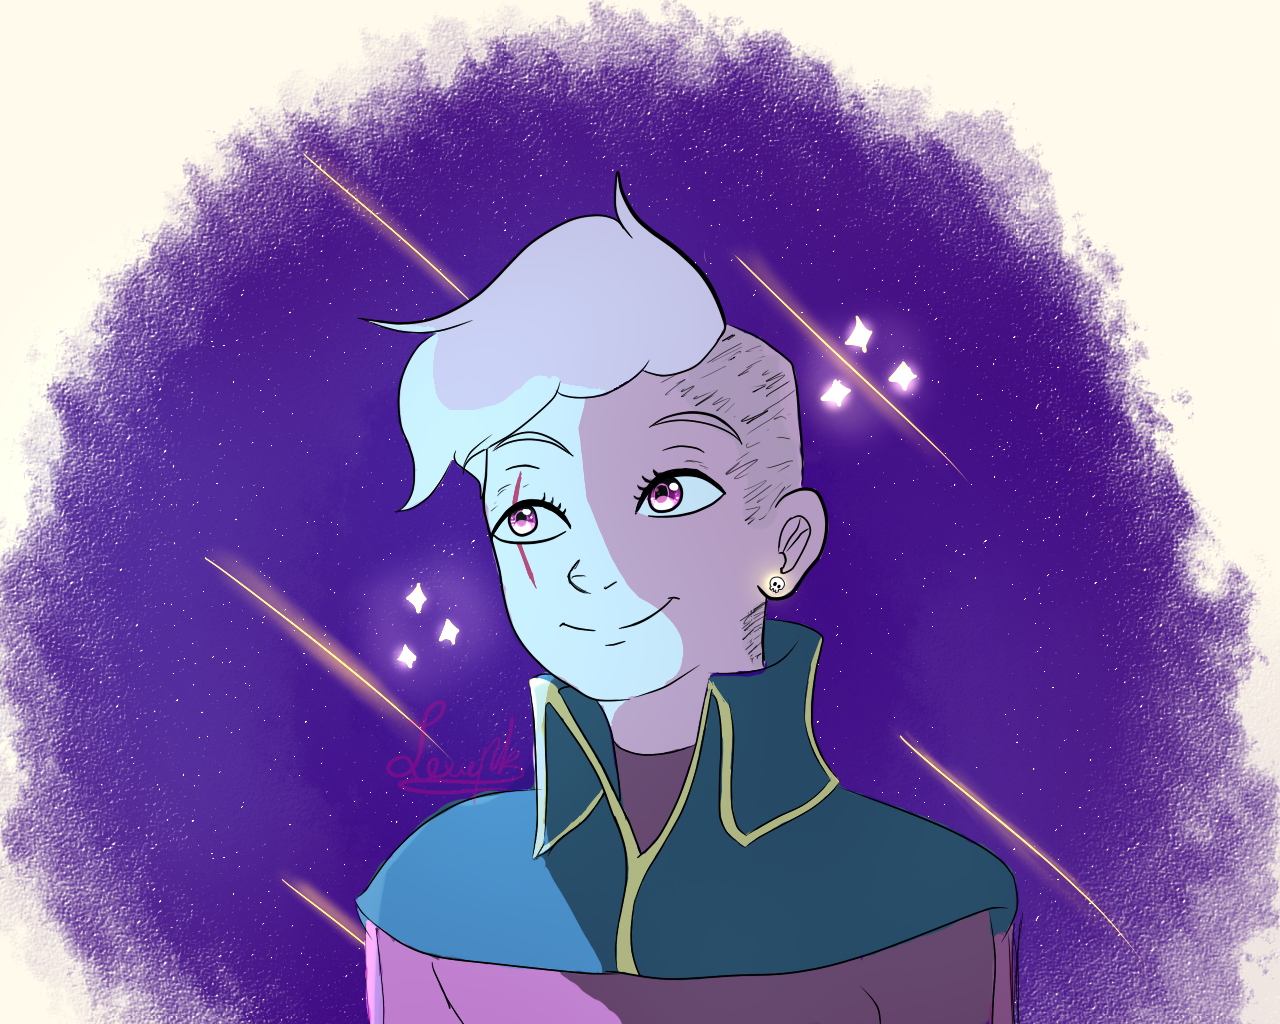 If you like, please reblog!!! Lars of the stars!! The best space pirate! (click for better quality)